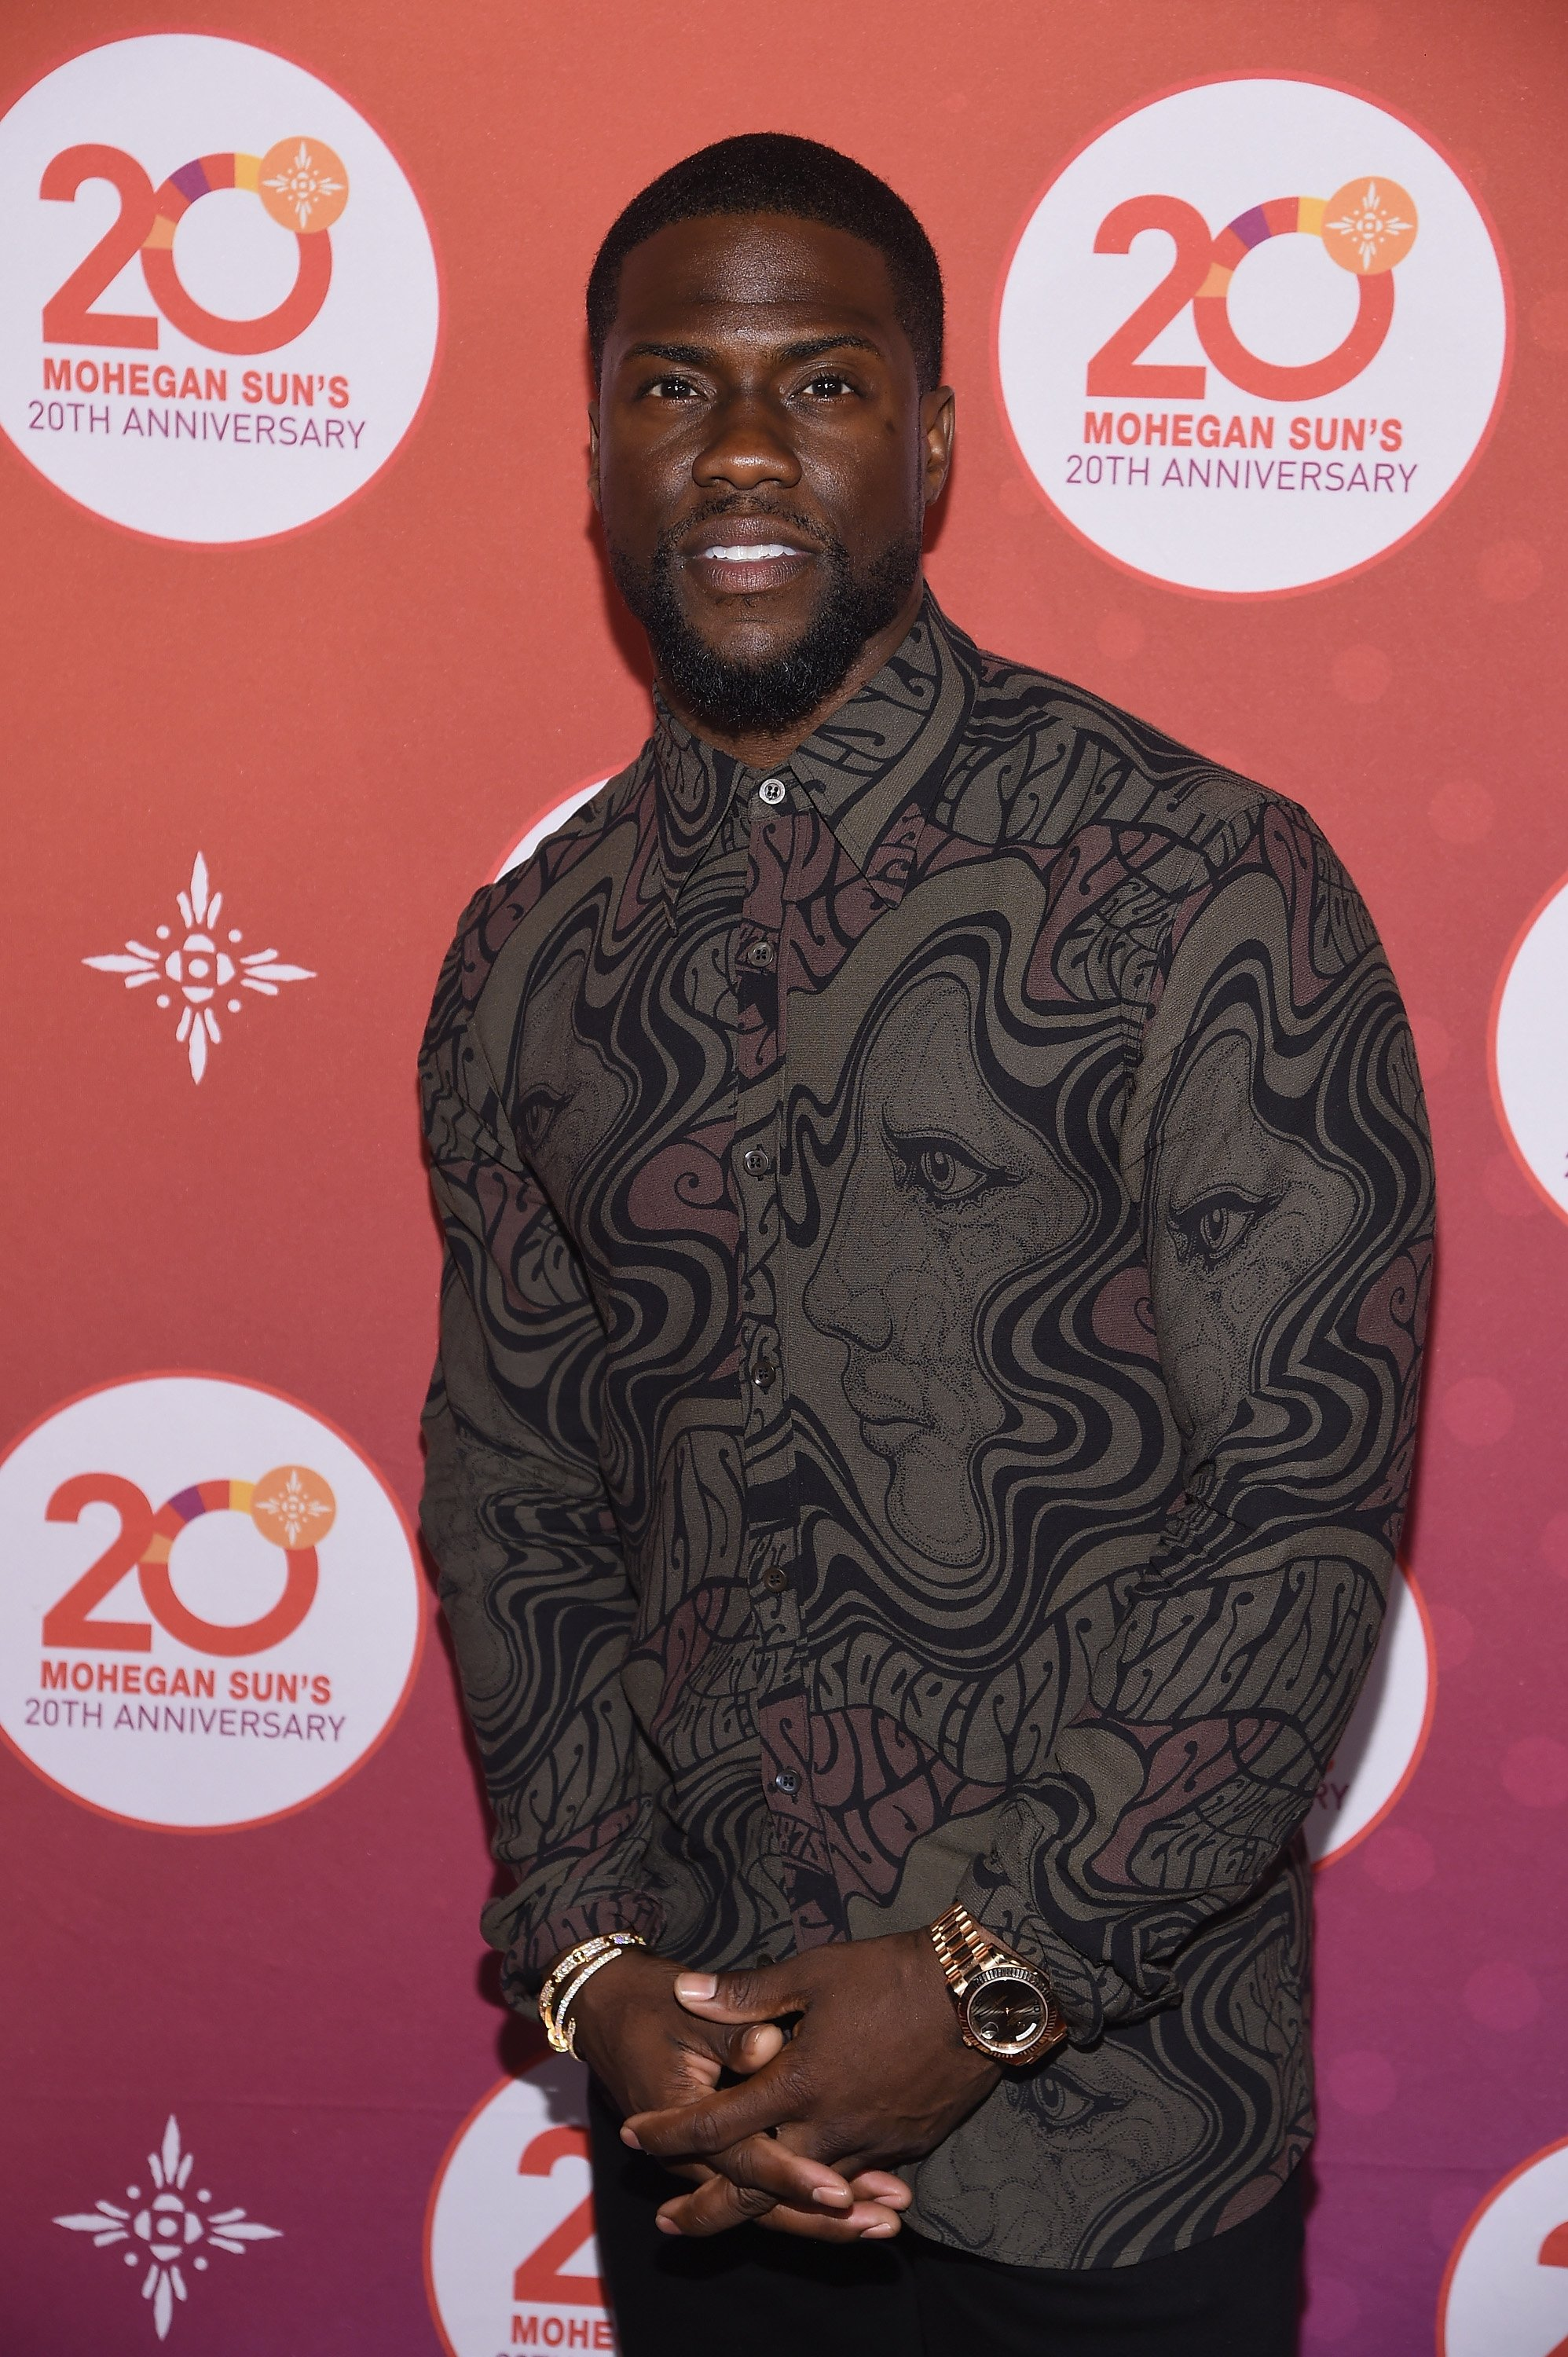 Kevin Hart walks the red carpet before the Kevin Hart Official After Party with DJ Ruckus for Mohegan Sun's 20th Anniversary on October 14, 2016, in Uncasville, Connecticut. | Source: Getty Images.